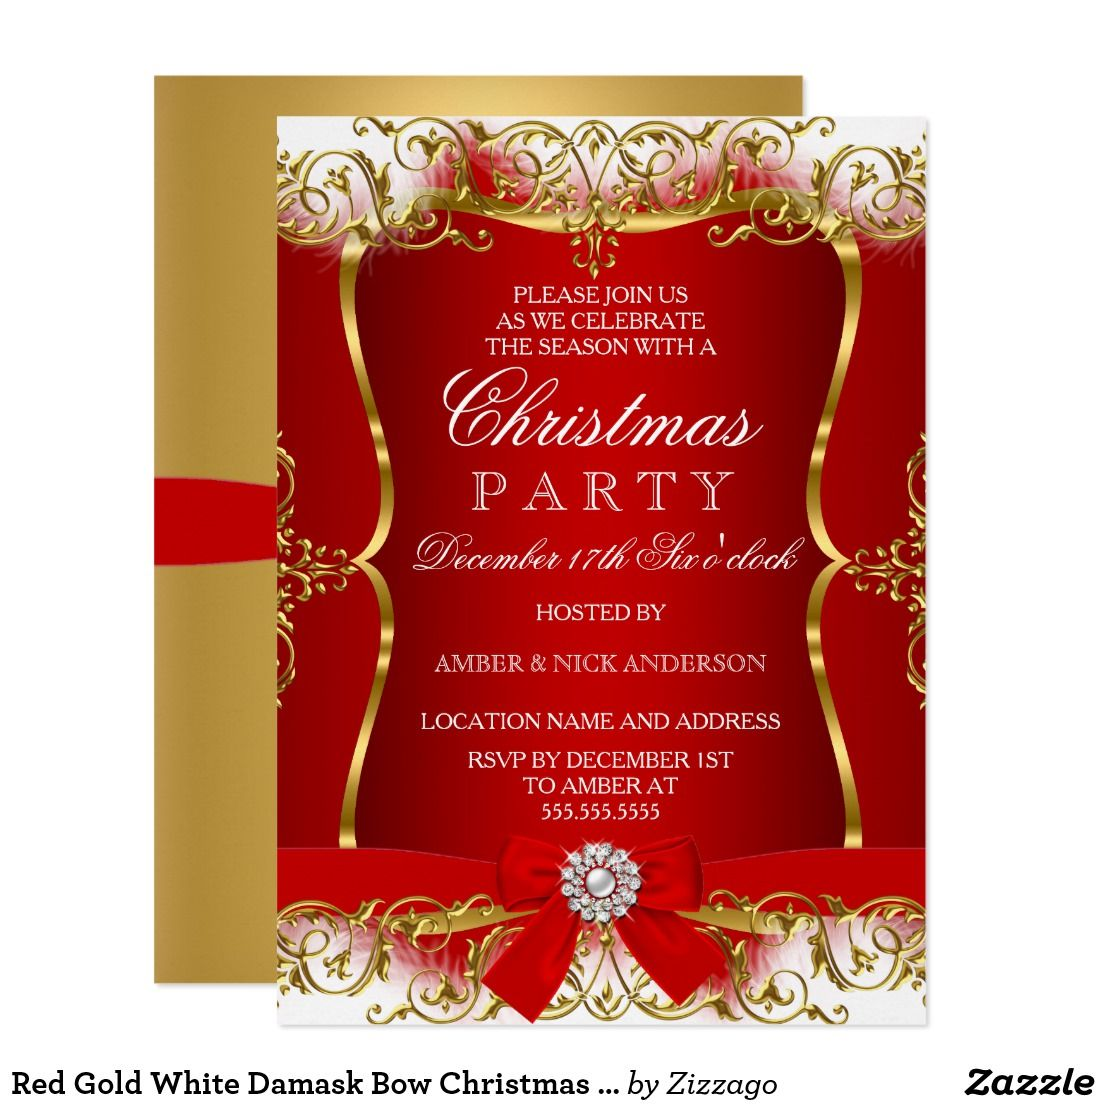 Red Gold White Damask Bow Christmas Party Invite | Christmas ...